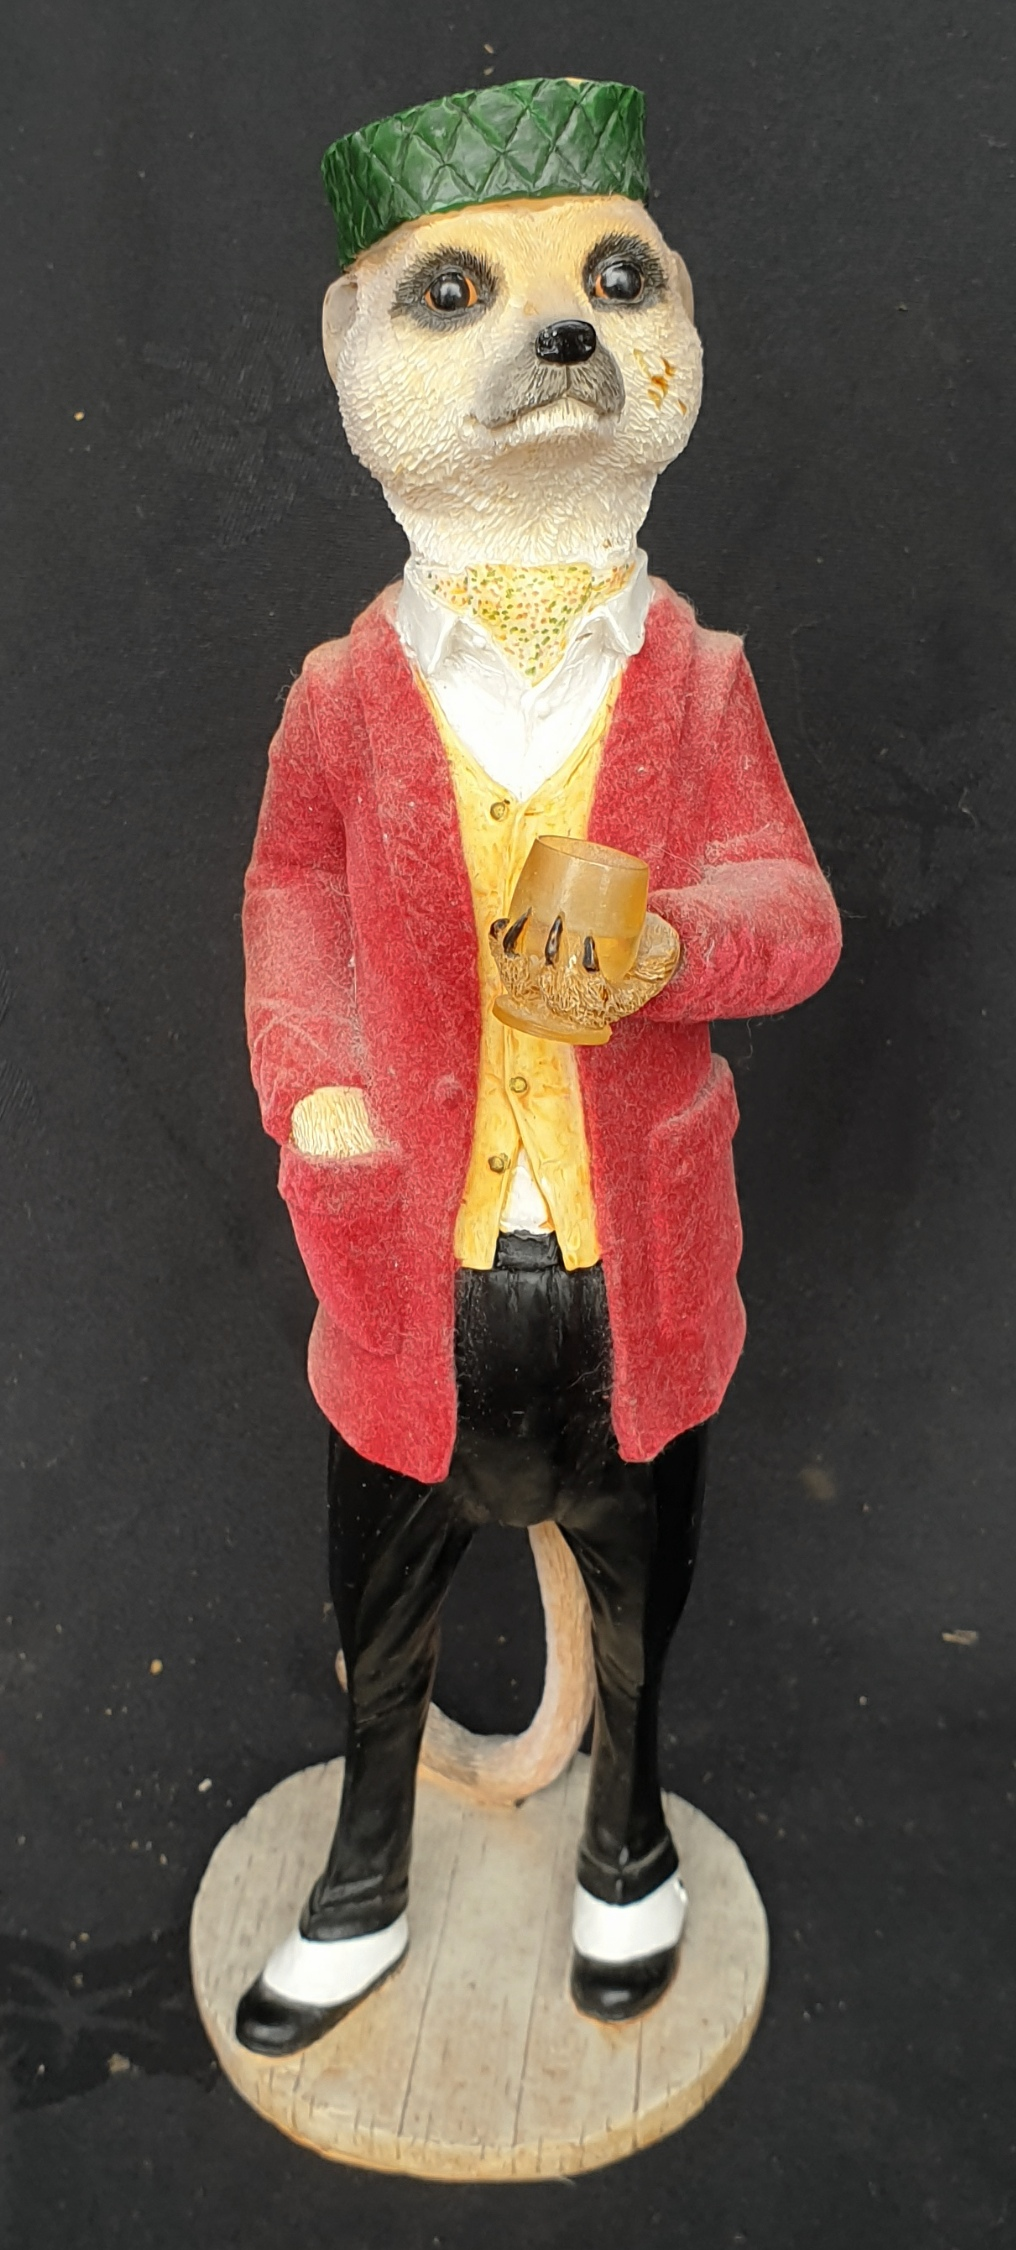 Vintage Resin Meerkat Figure Alexei 10 Inches Tall